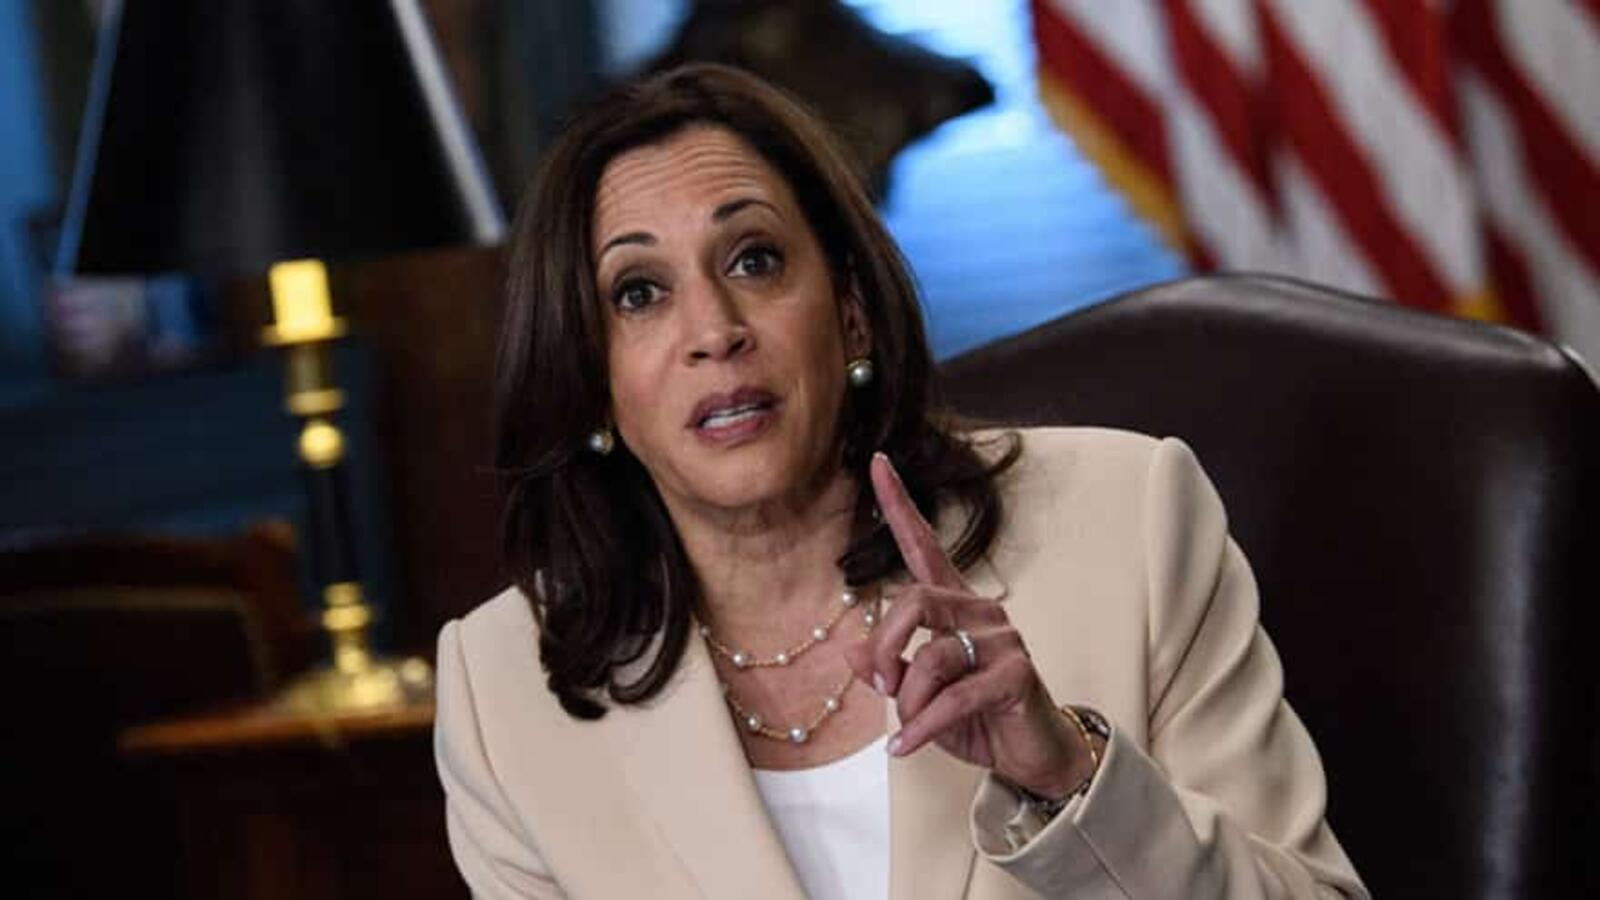 KAMALA SUPPORT DROPS: Latest Polls Show Americans Souring on Vice Presid...